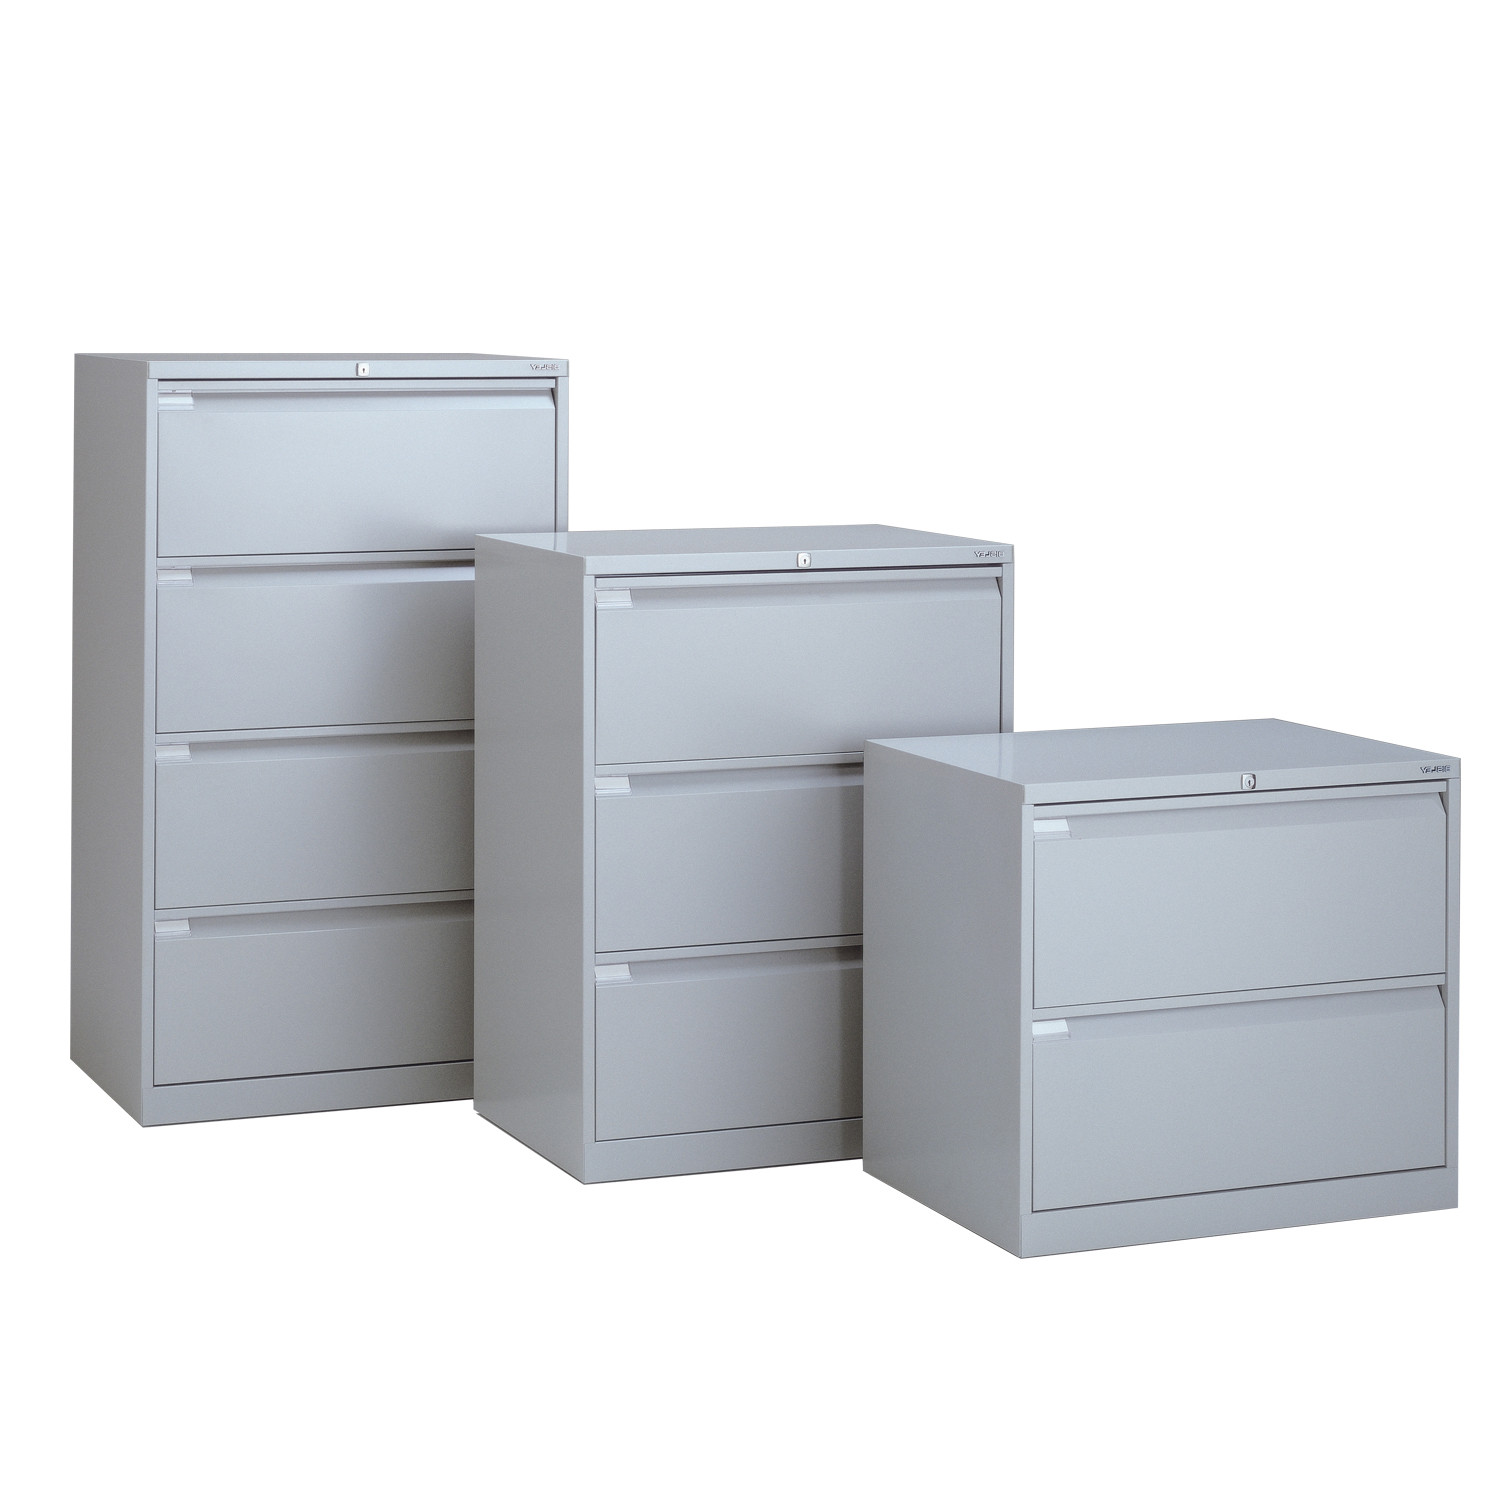 Side Filers in 2, 3 and 4 drawer height